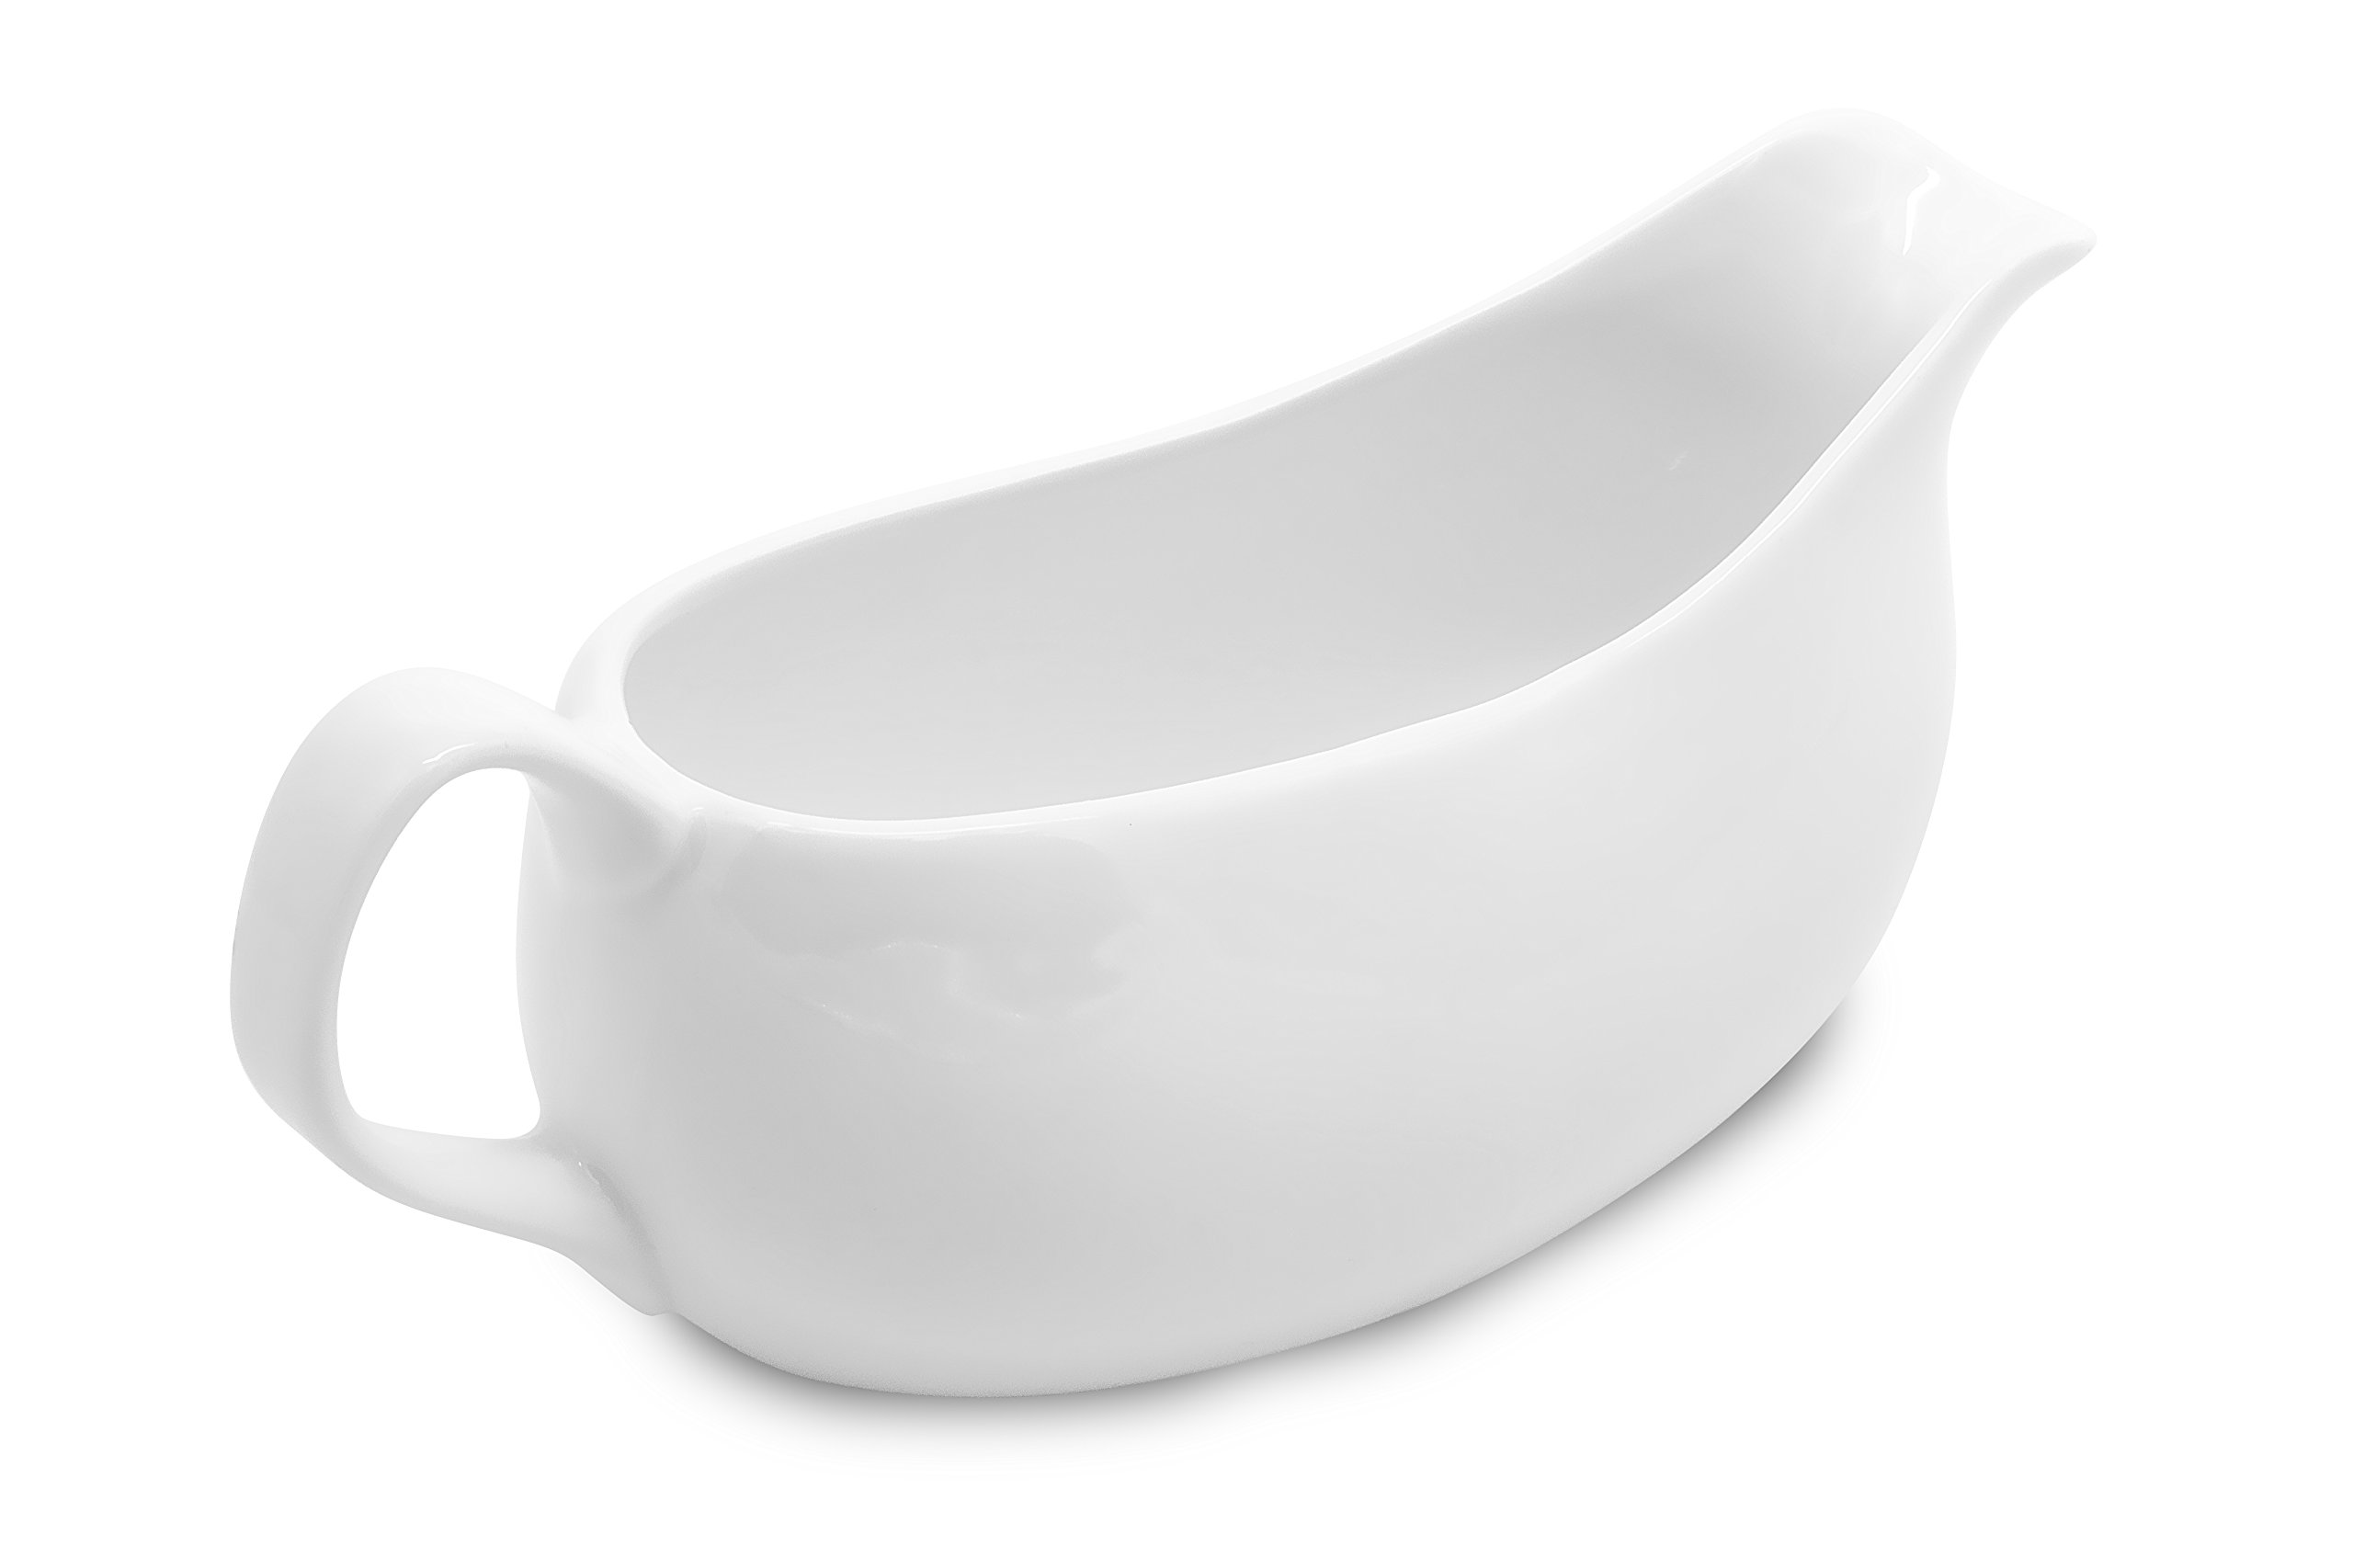 Nucookery Large 14 Oz Gravy Boat With Ergonomic Handle | White Fine Porcelain Saucier With Big Dripless Lip Spout | For Gravy, Warming Sauces, Salad Dressings, Milk, More | Microwave & Freezer Safe by Nucookery (Image #3)